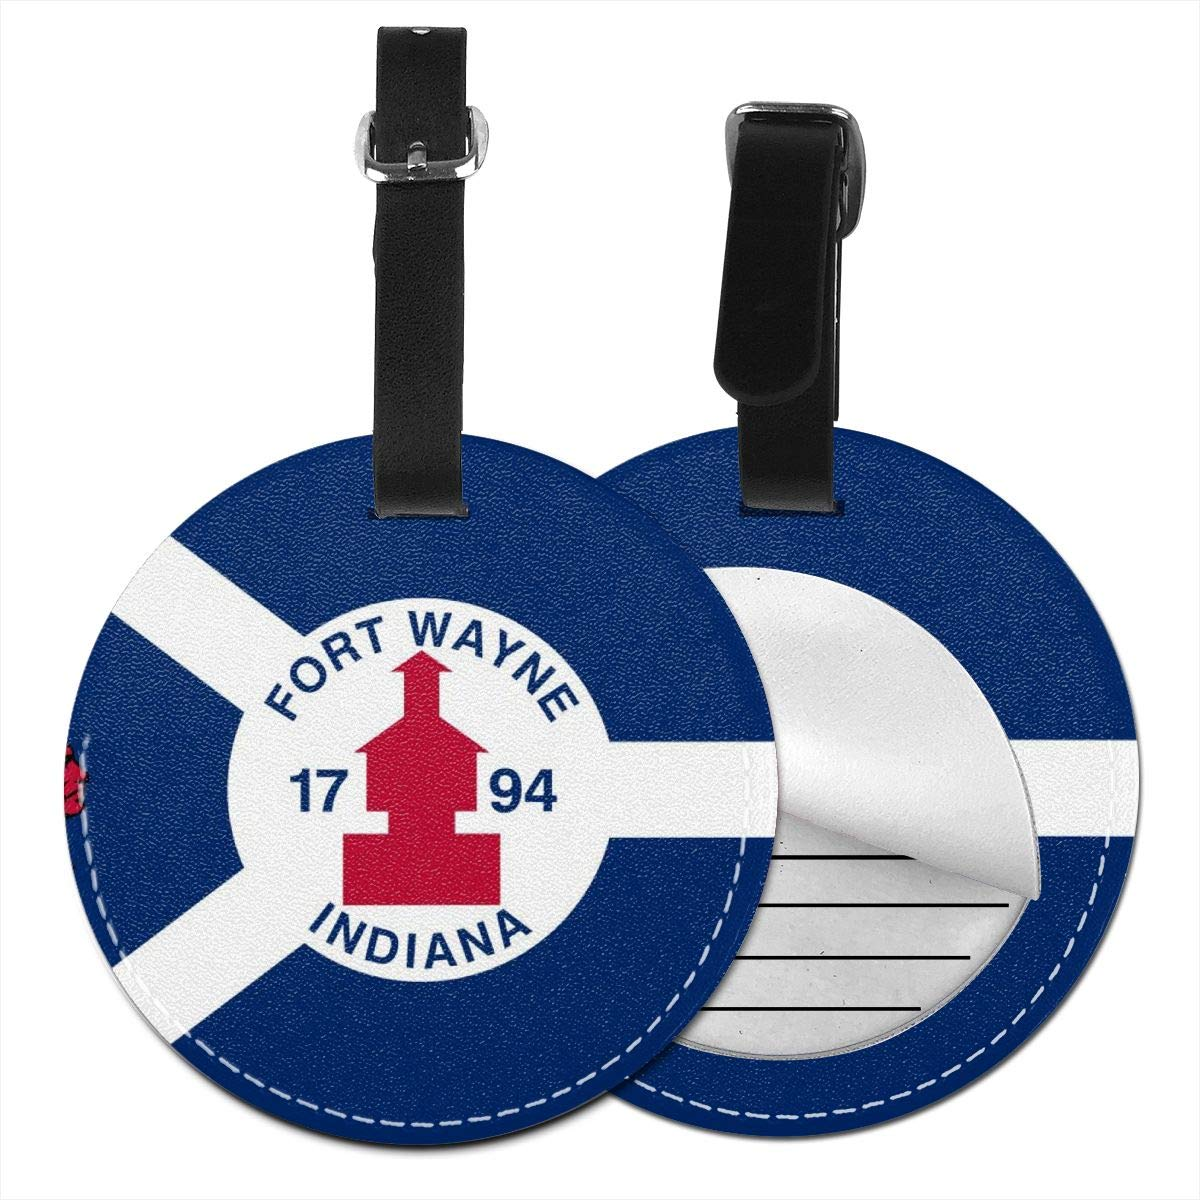 Simoner Fort Wayne Flag Round PU Leahter Luggage Tags Privacy Protection Travel Bag Labels Suitcase Tags